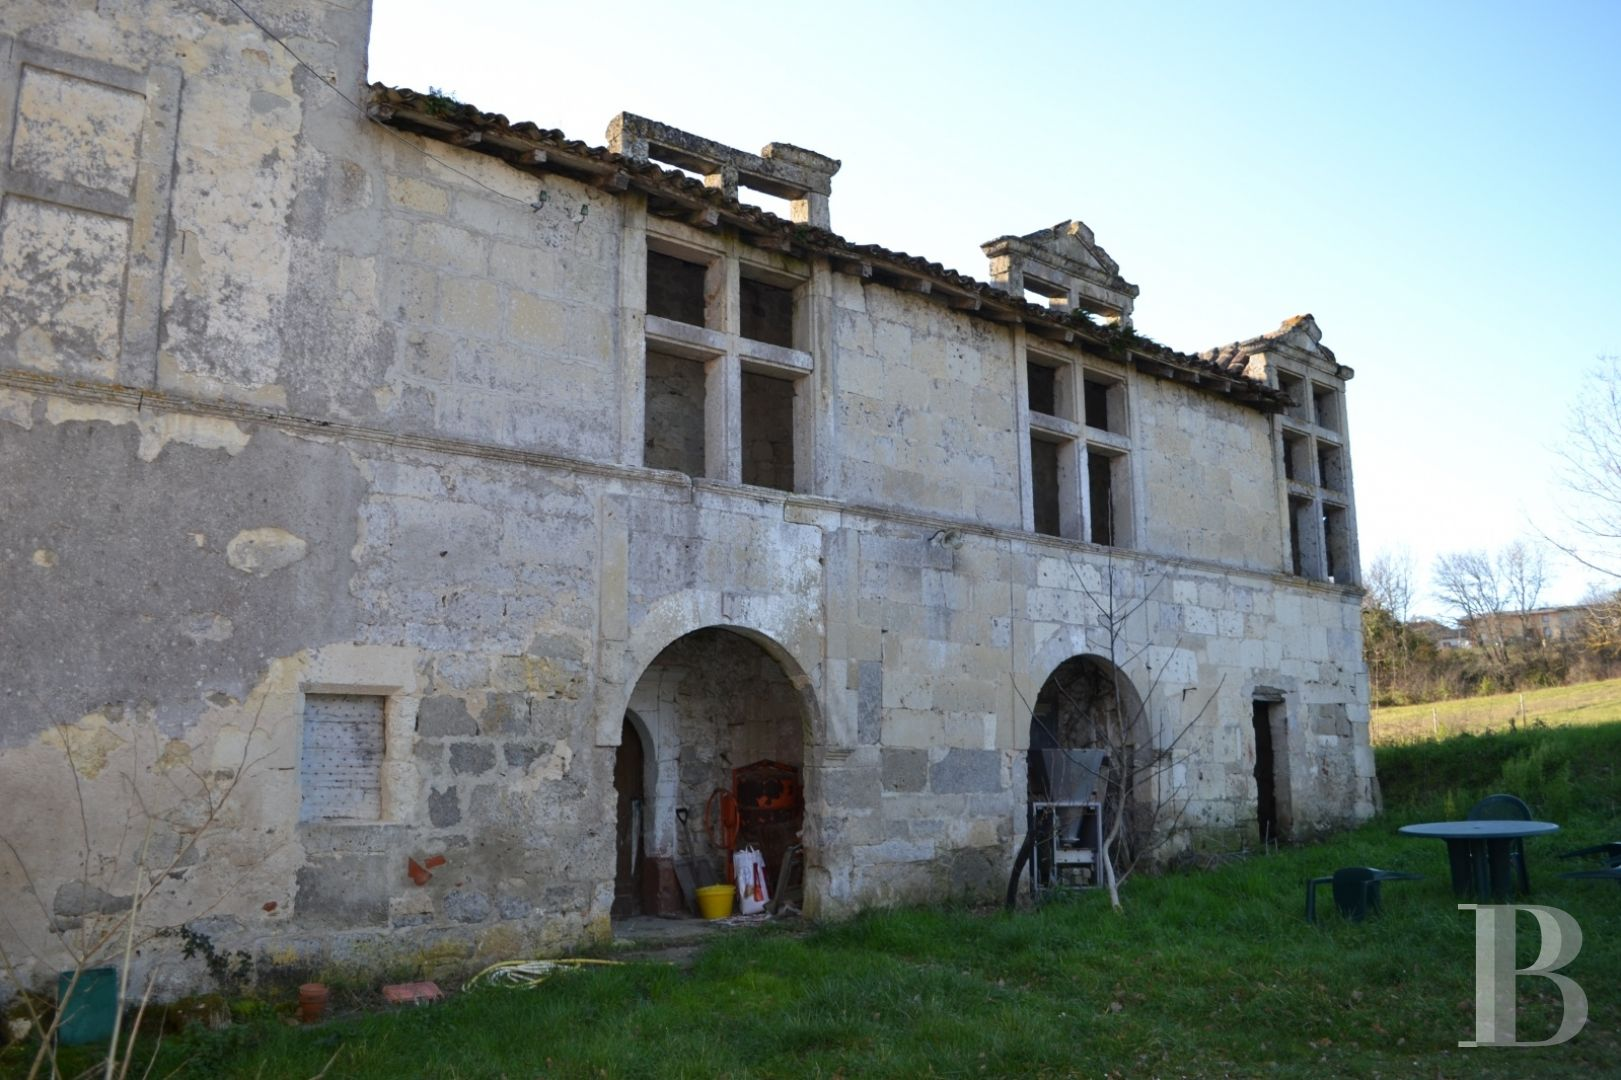 property for sale France aquitaine stronghold house - 5 zoom